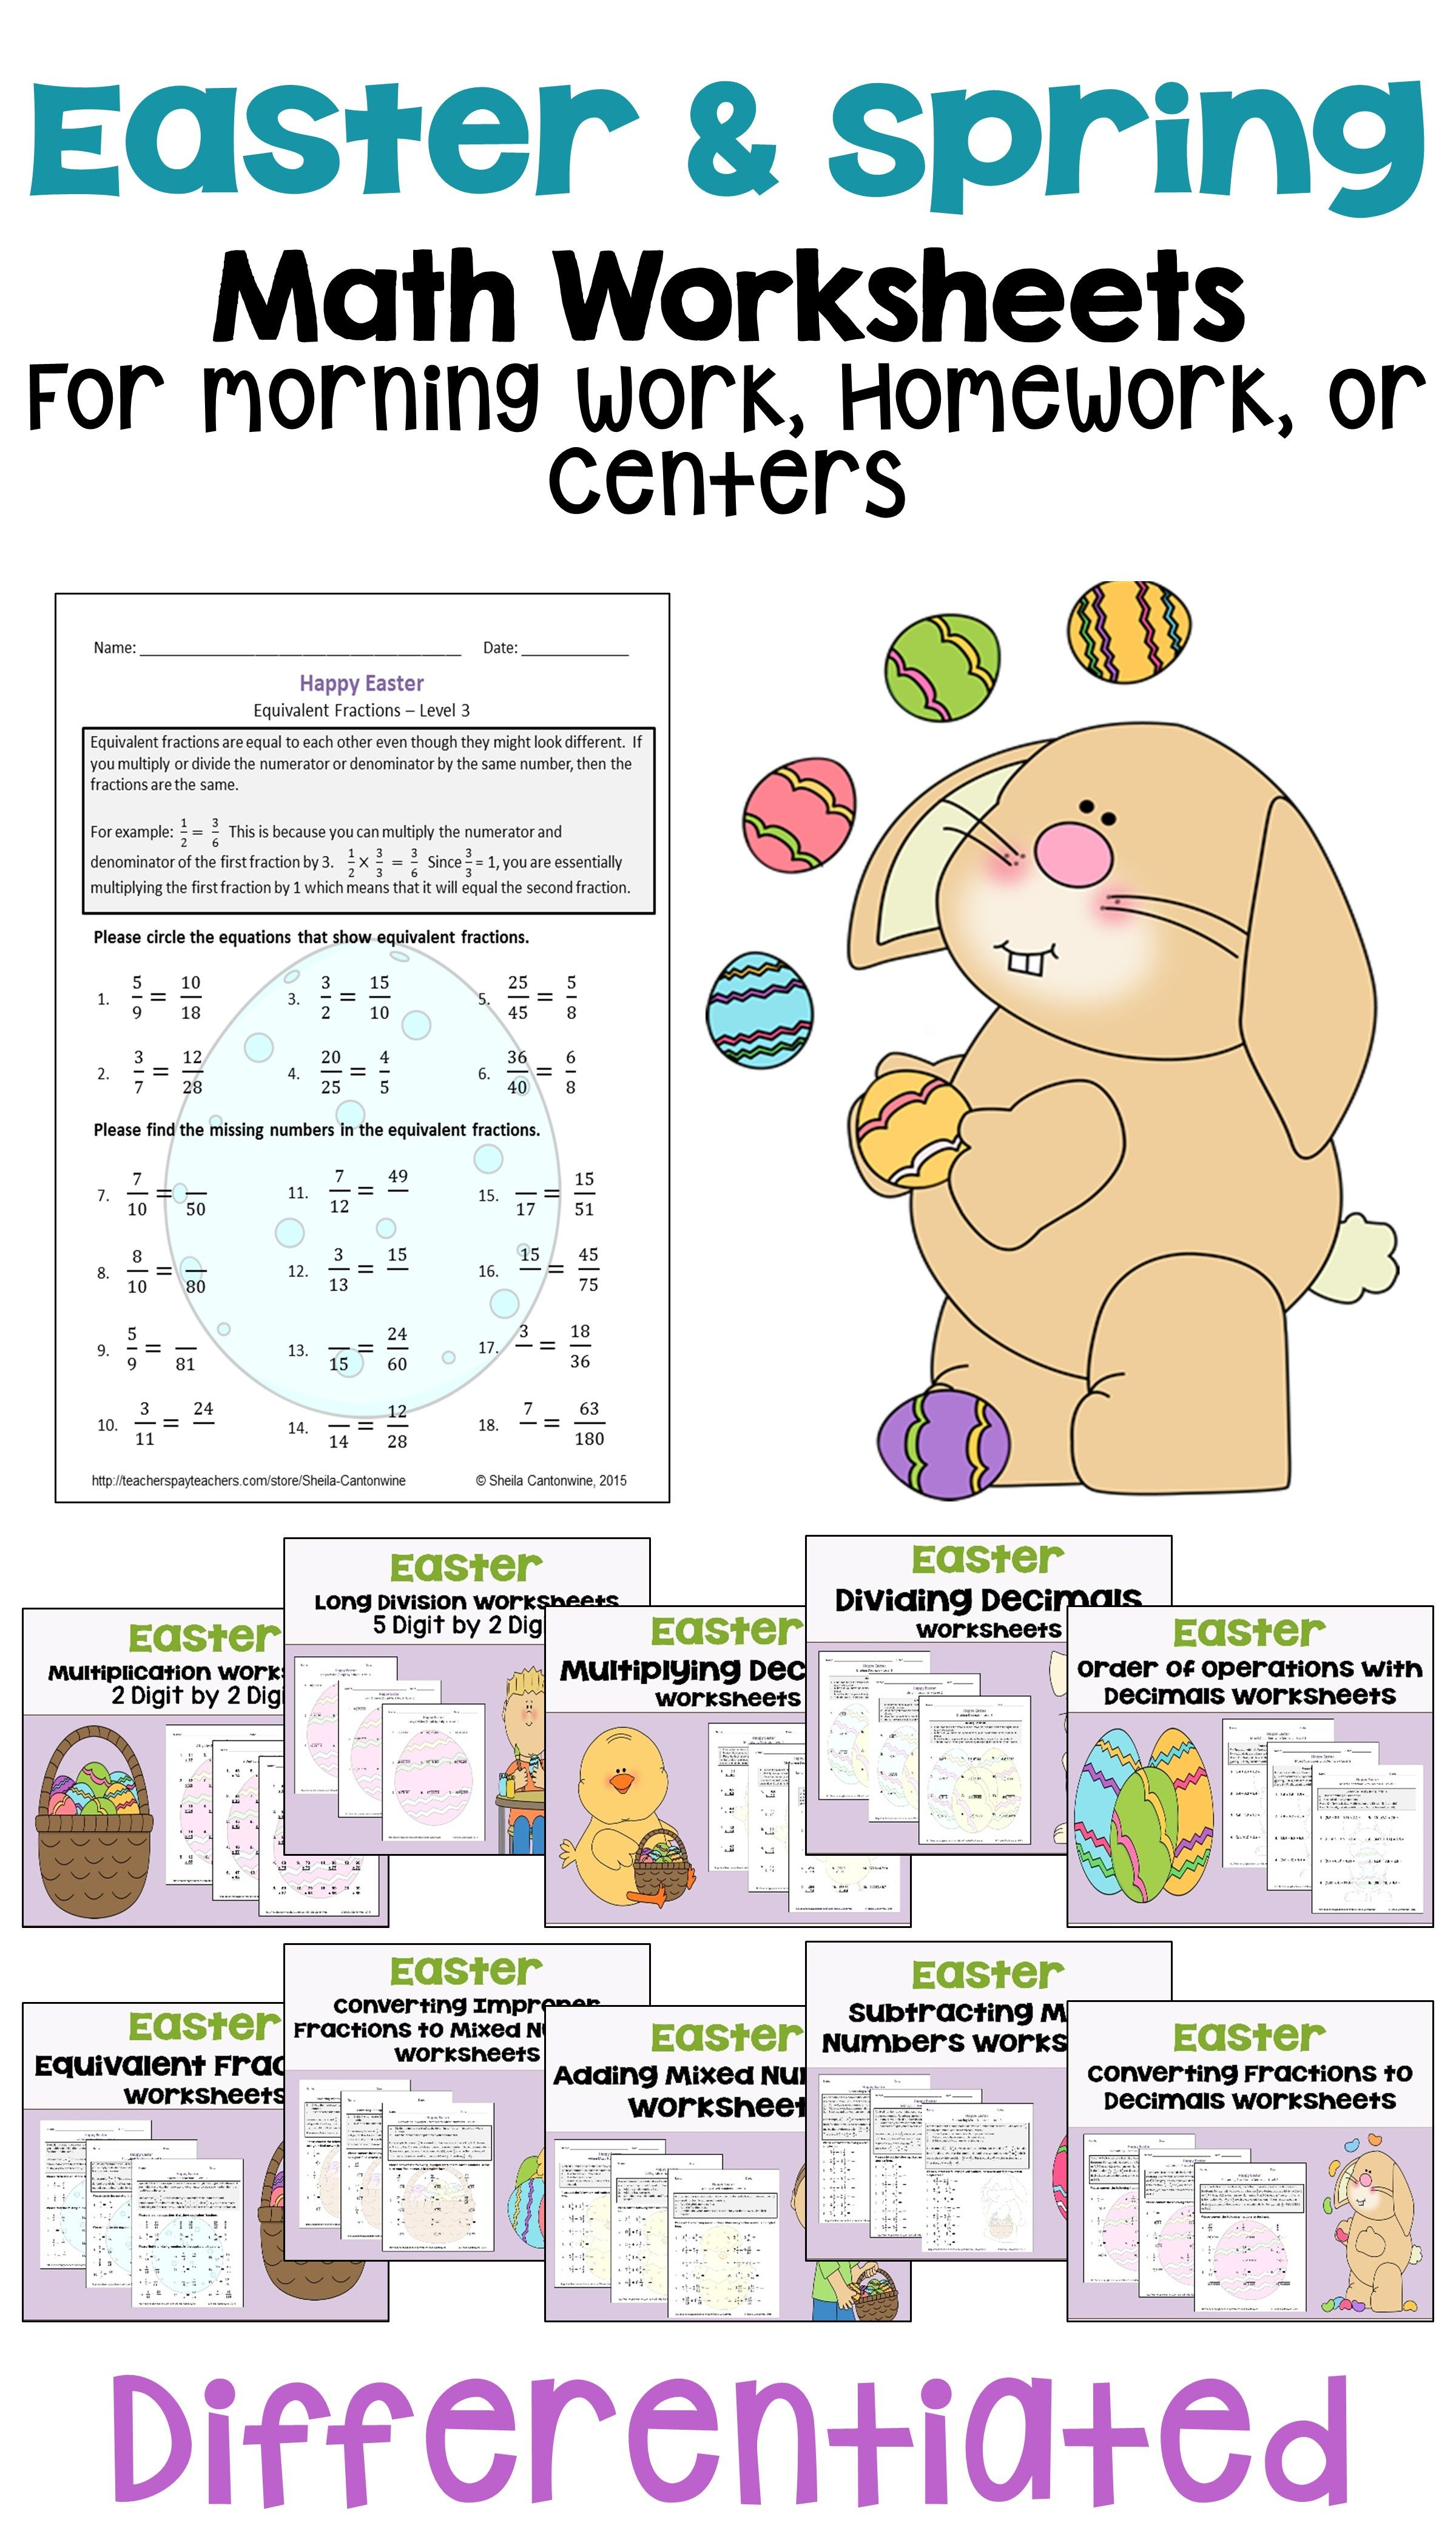 Easter Math Worksheet Bundle Differentiated With 3 Levels